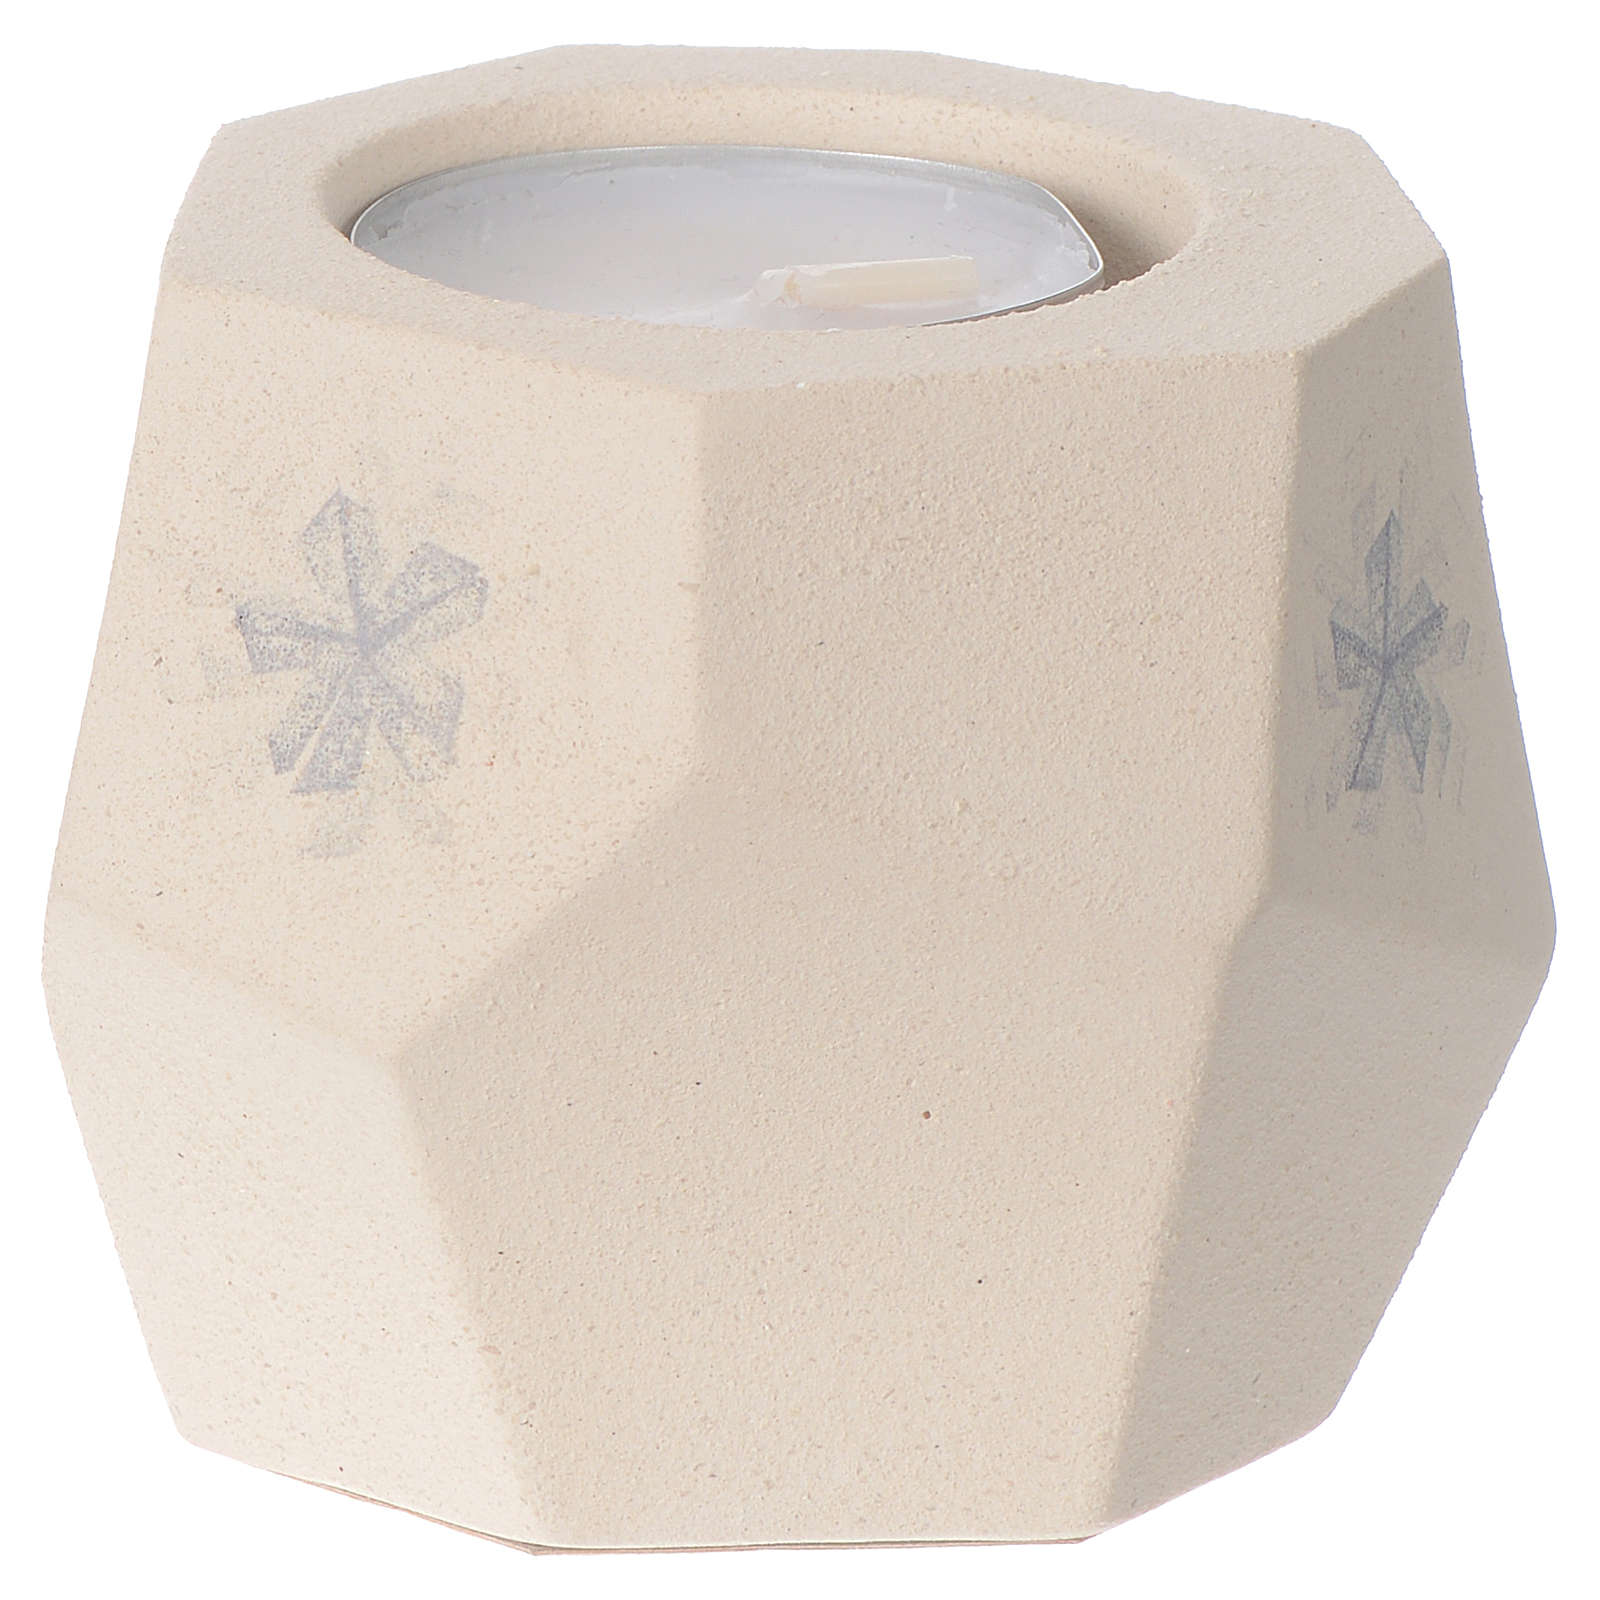 Prism shape Christmas candle in clay by Centro Ave, 6.7cm 3